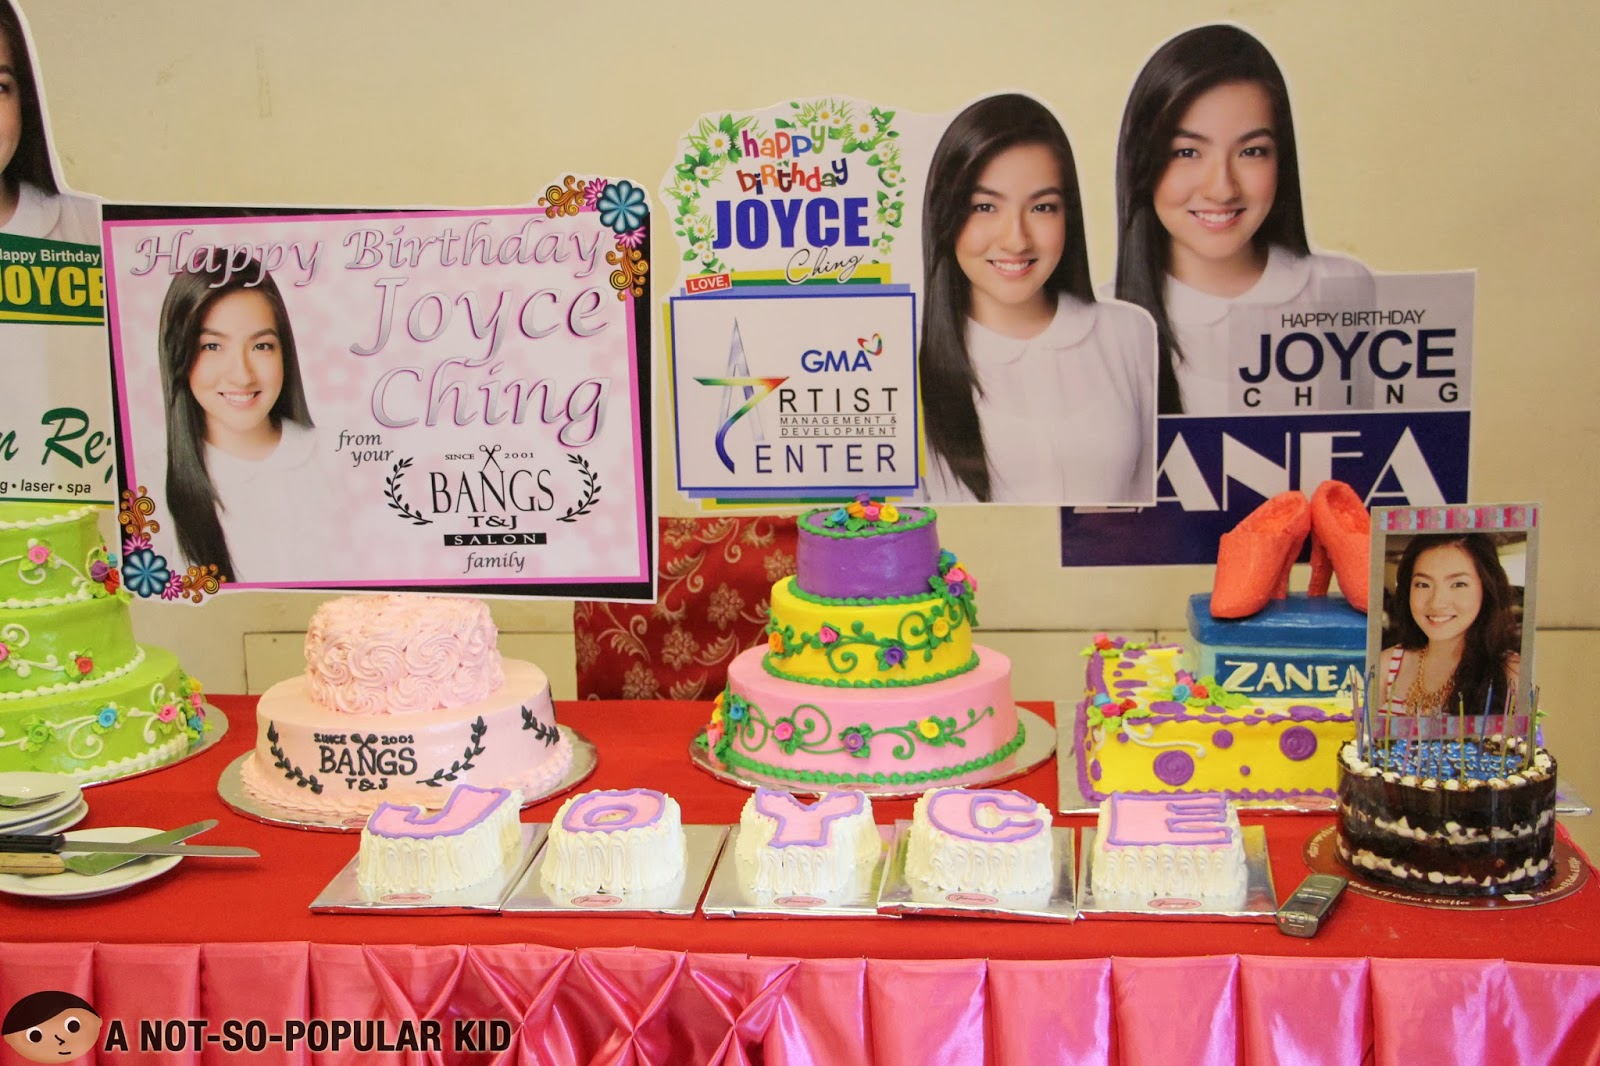 The Birthday Cakes all for Joyce Ching's 19th Birthday